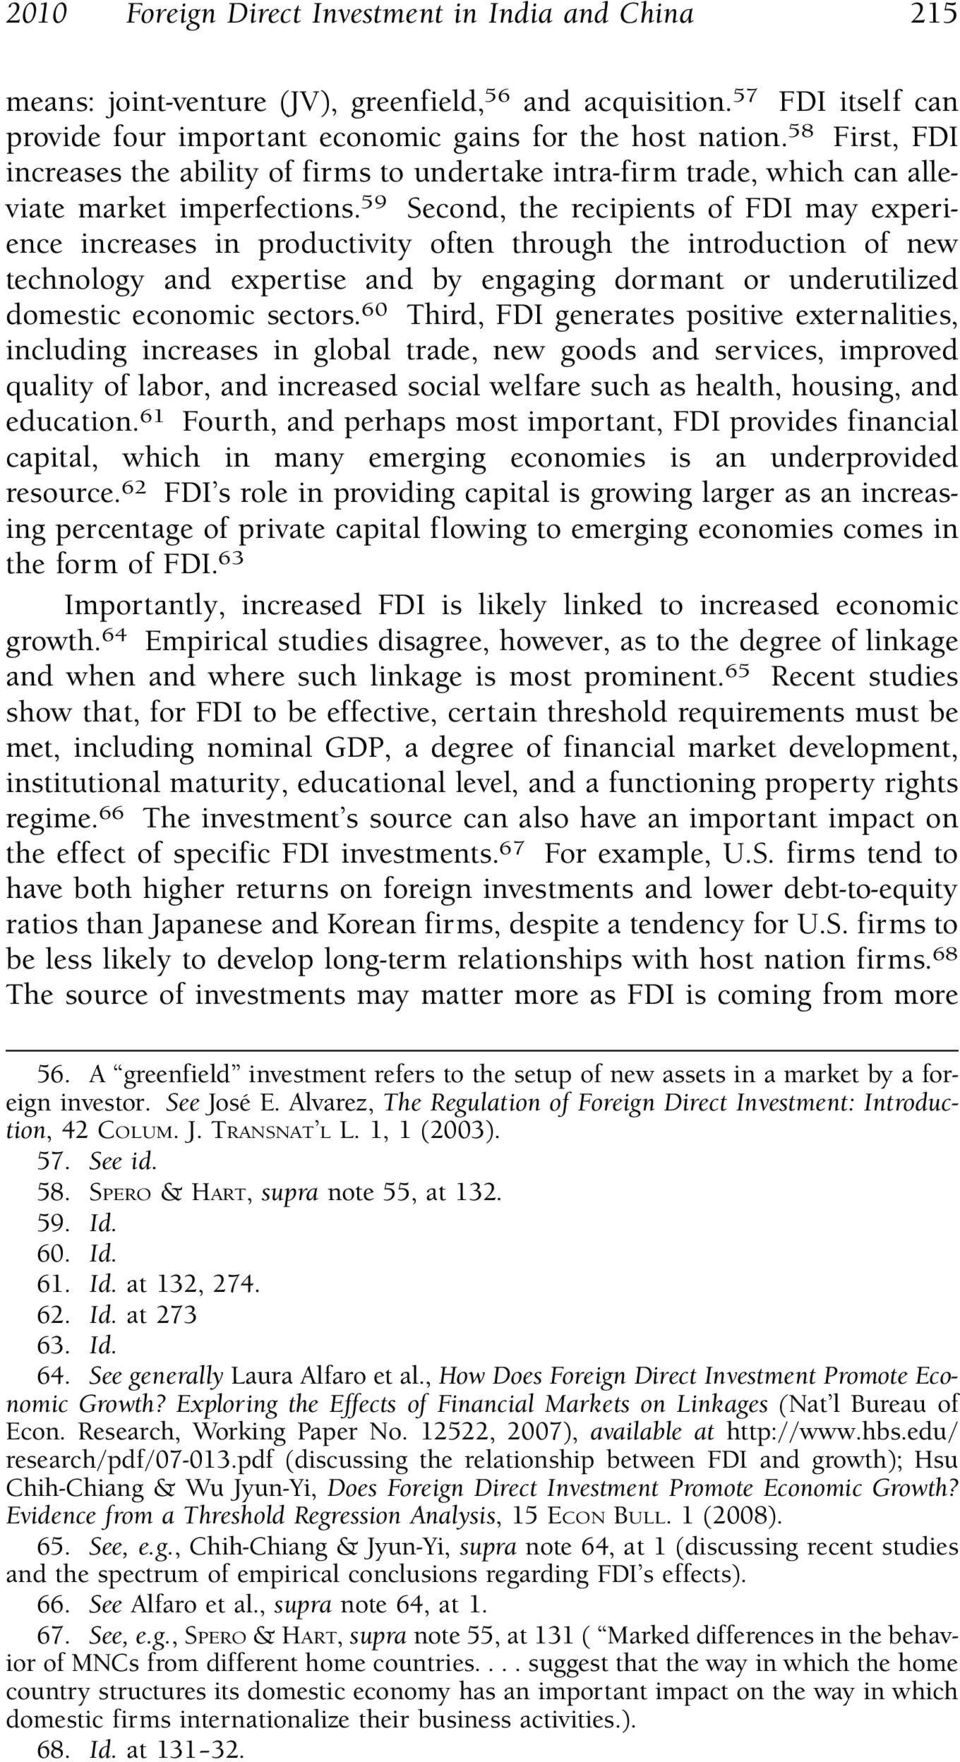 59 Second, the recipients of FDI may experience increases in productivity often through the introduction of new technology and expertise and by engaging dormant or underutilized domestic economic